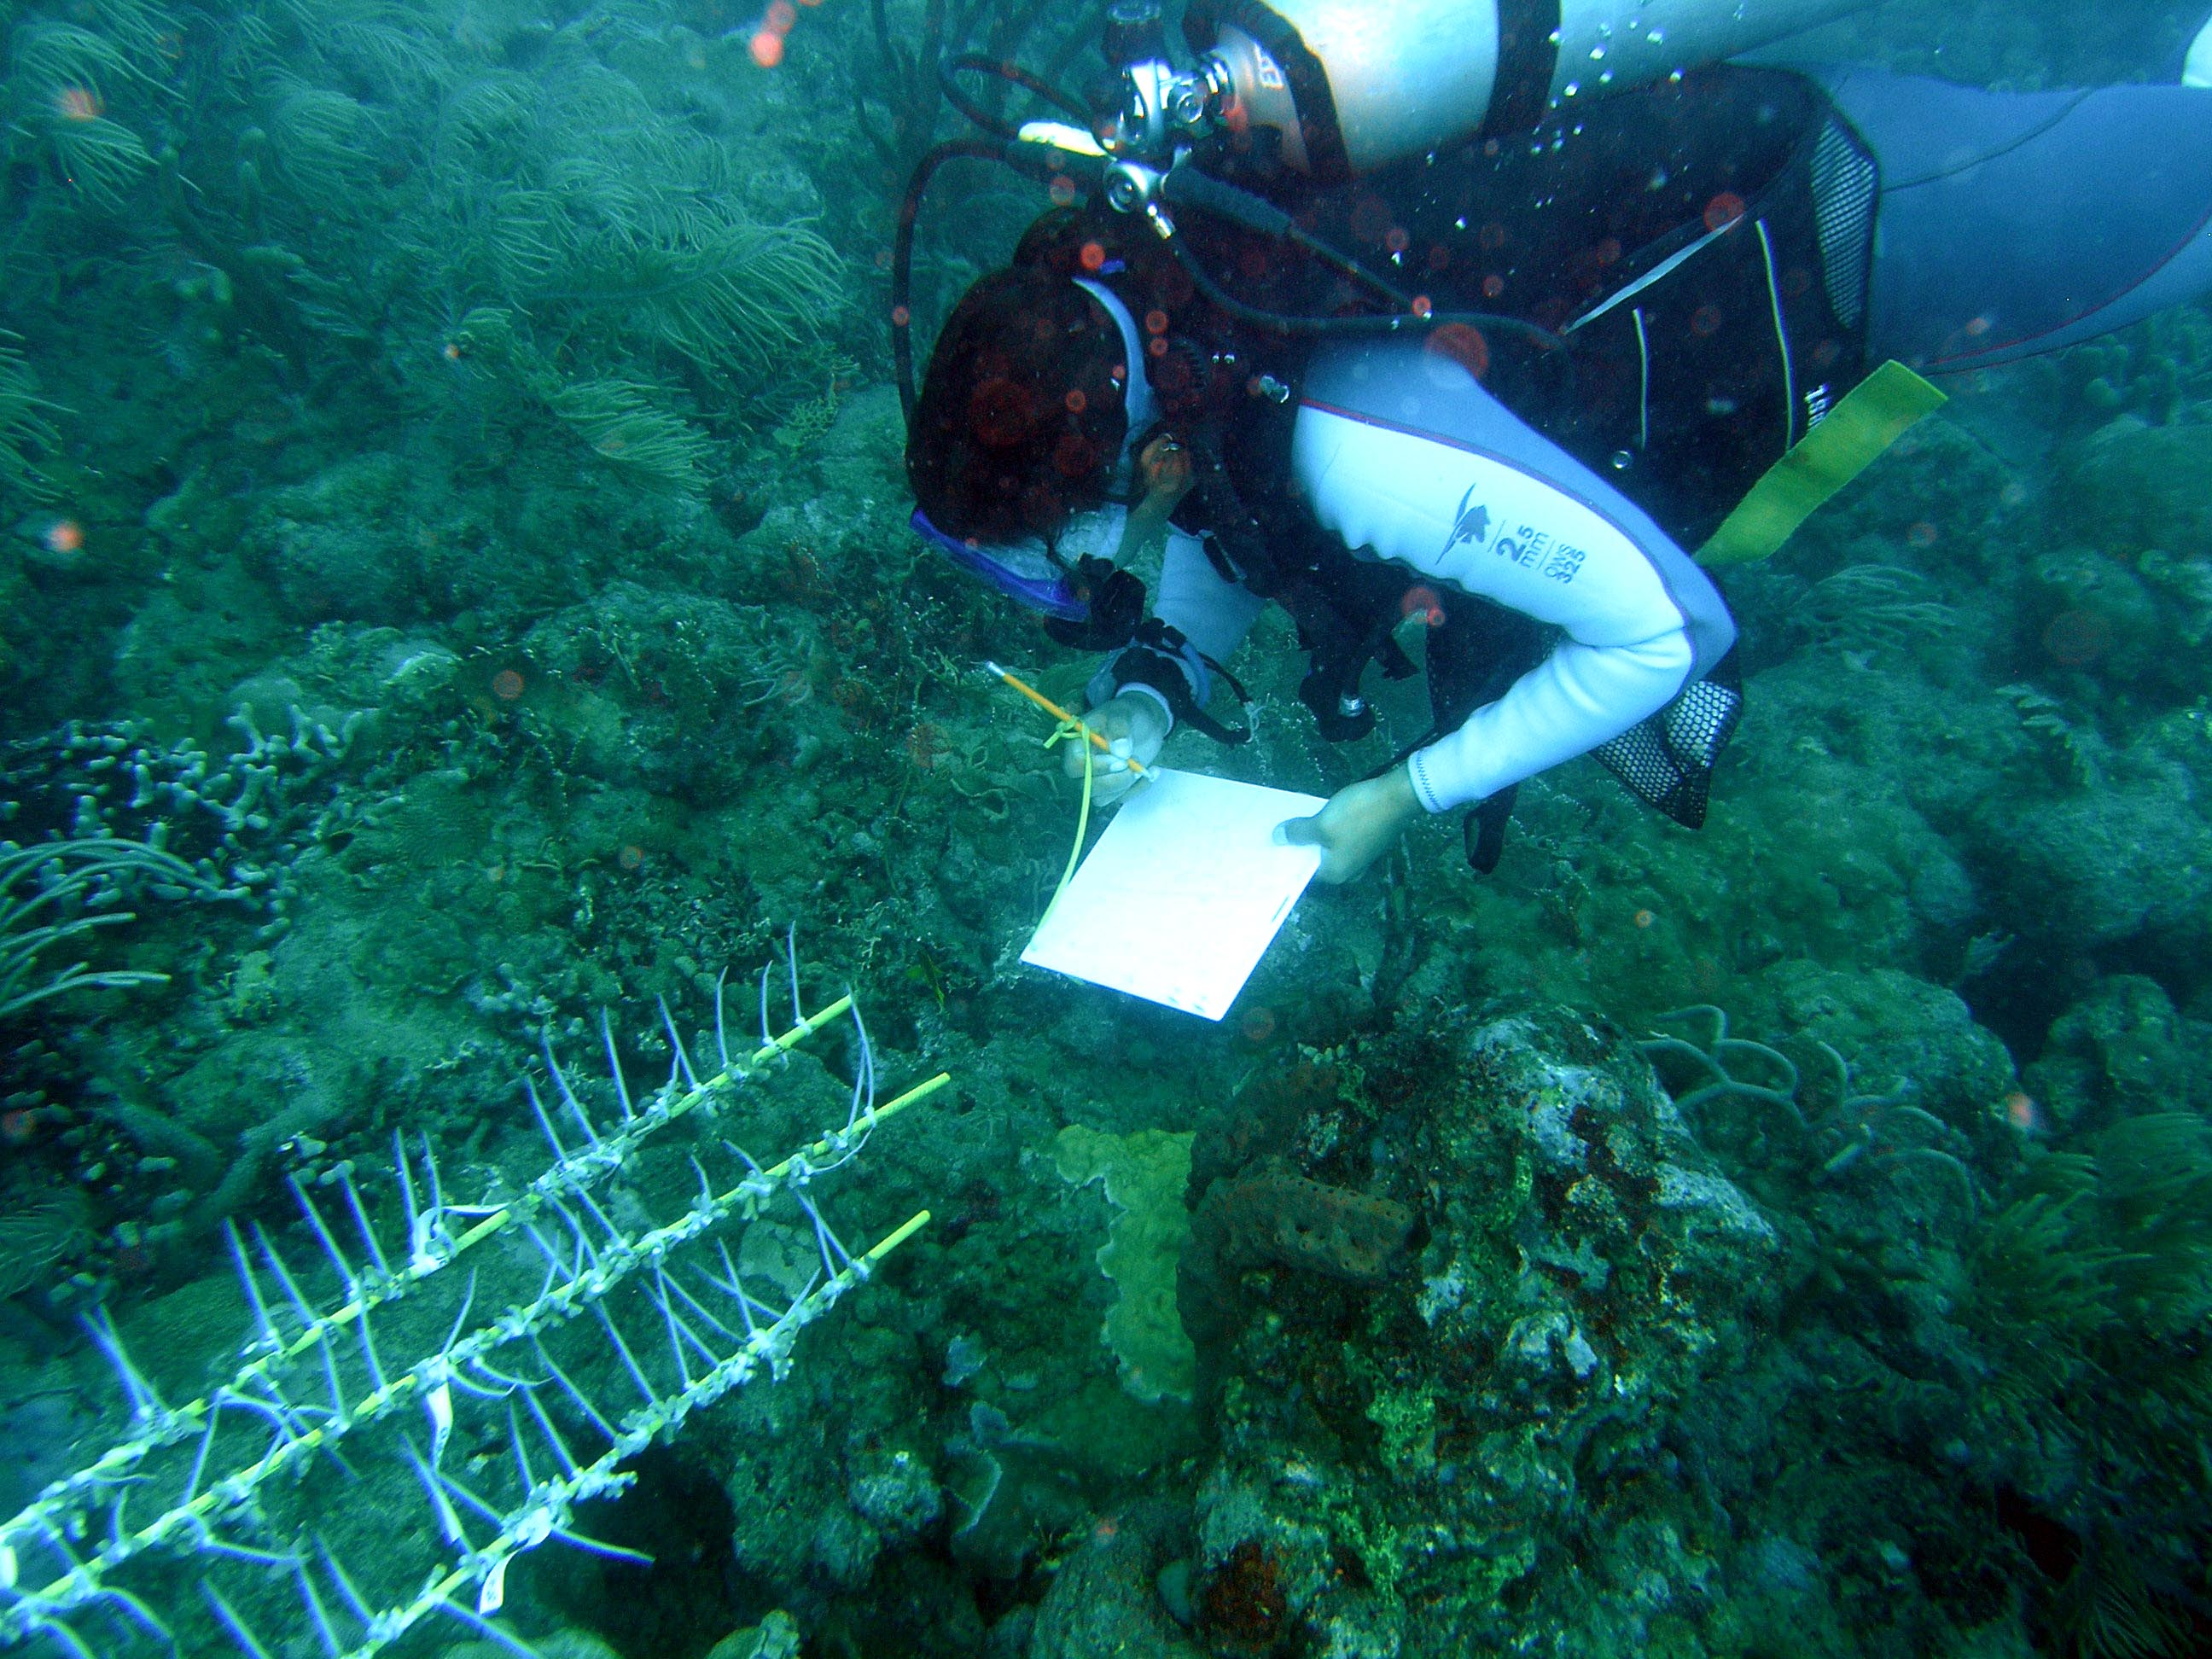 Conducting research on the Great Barrier Reef